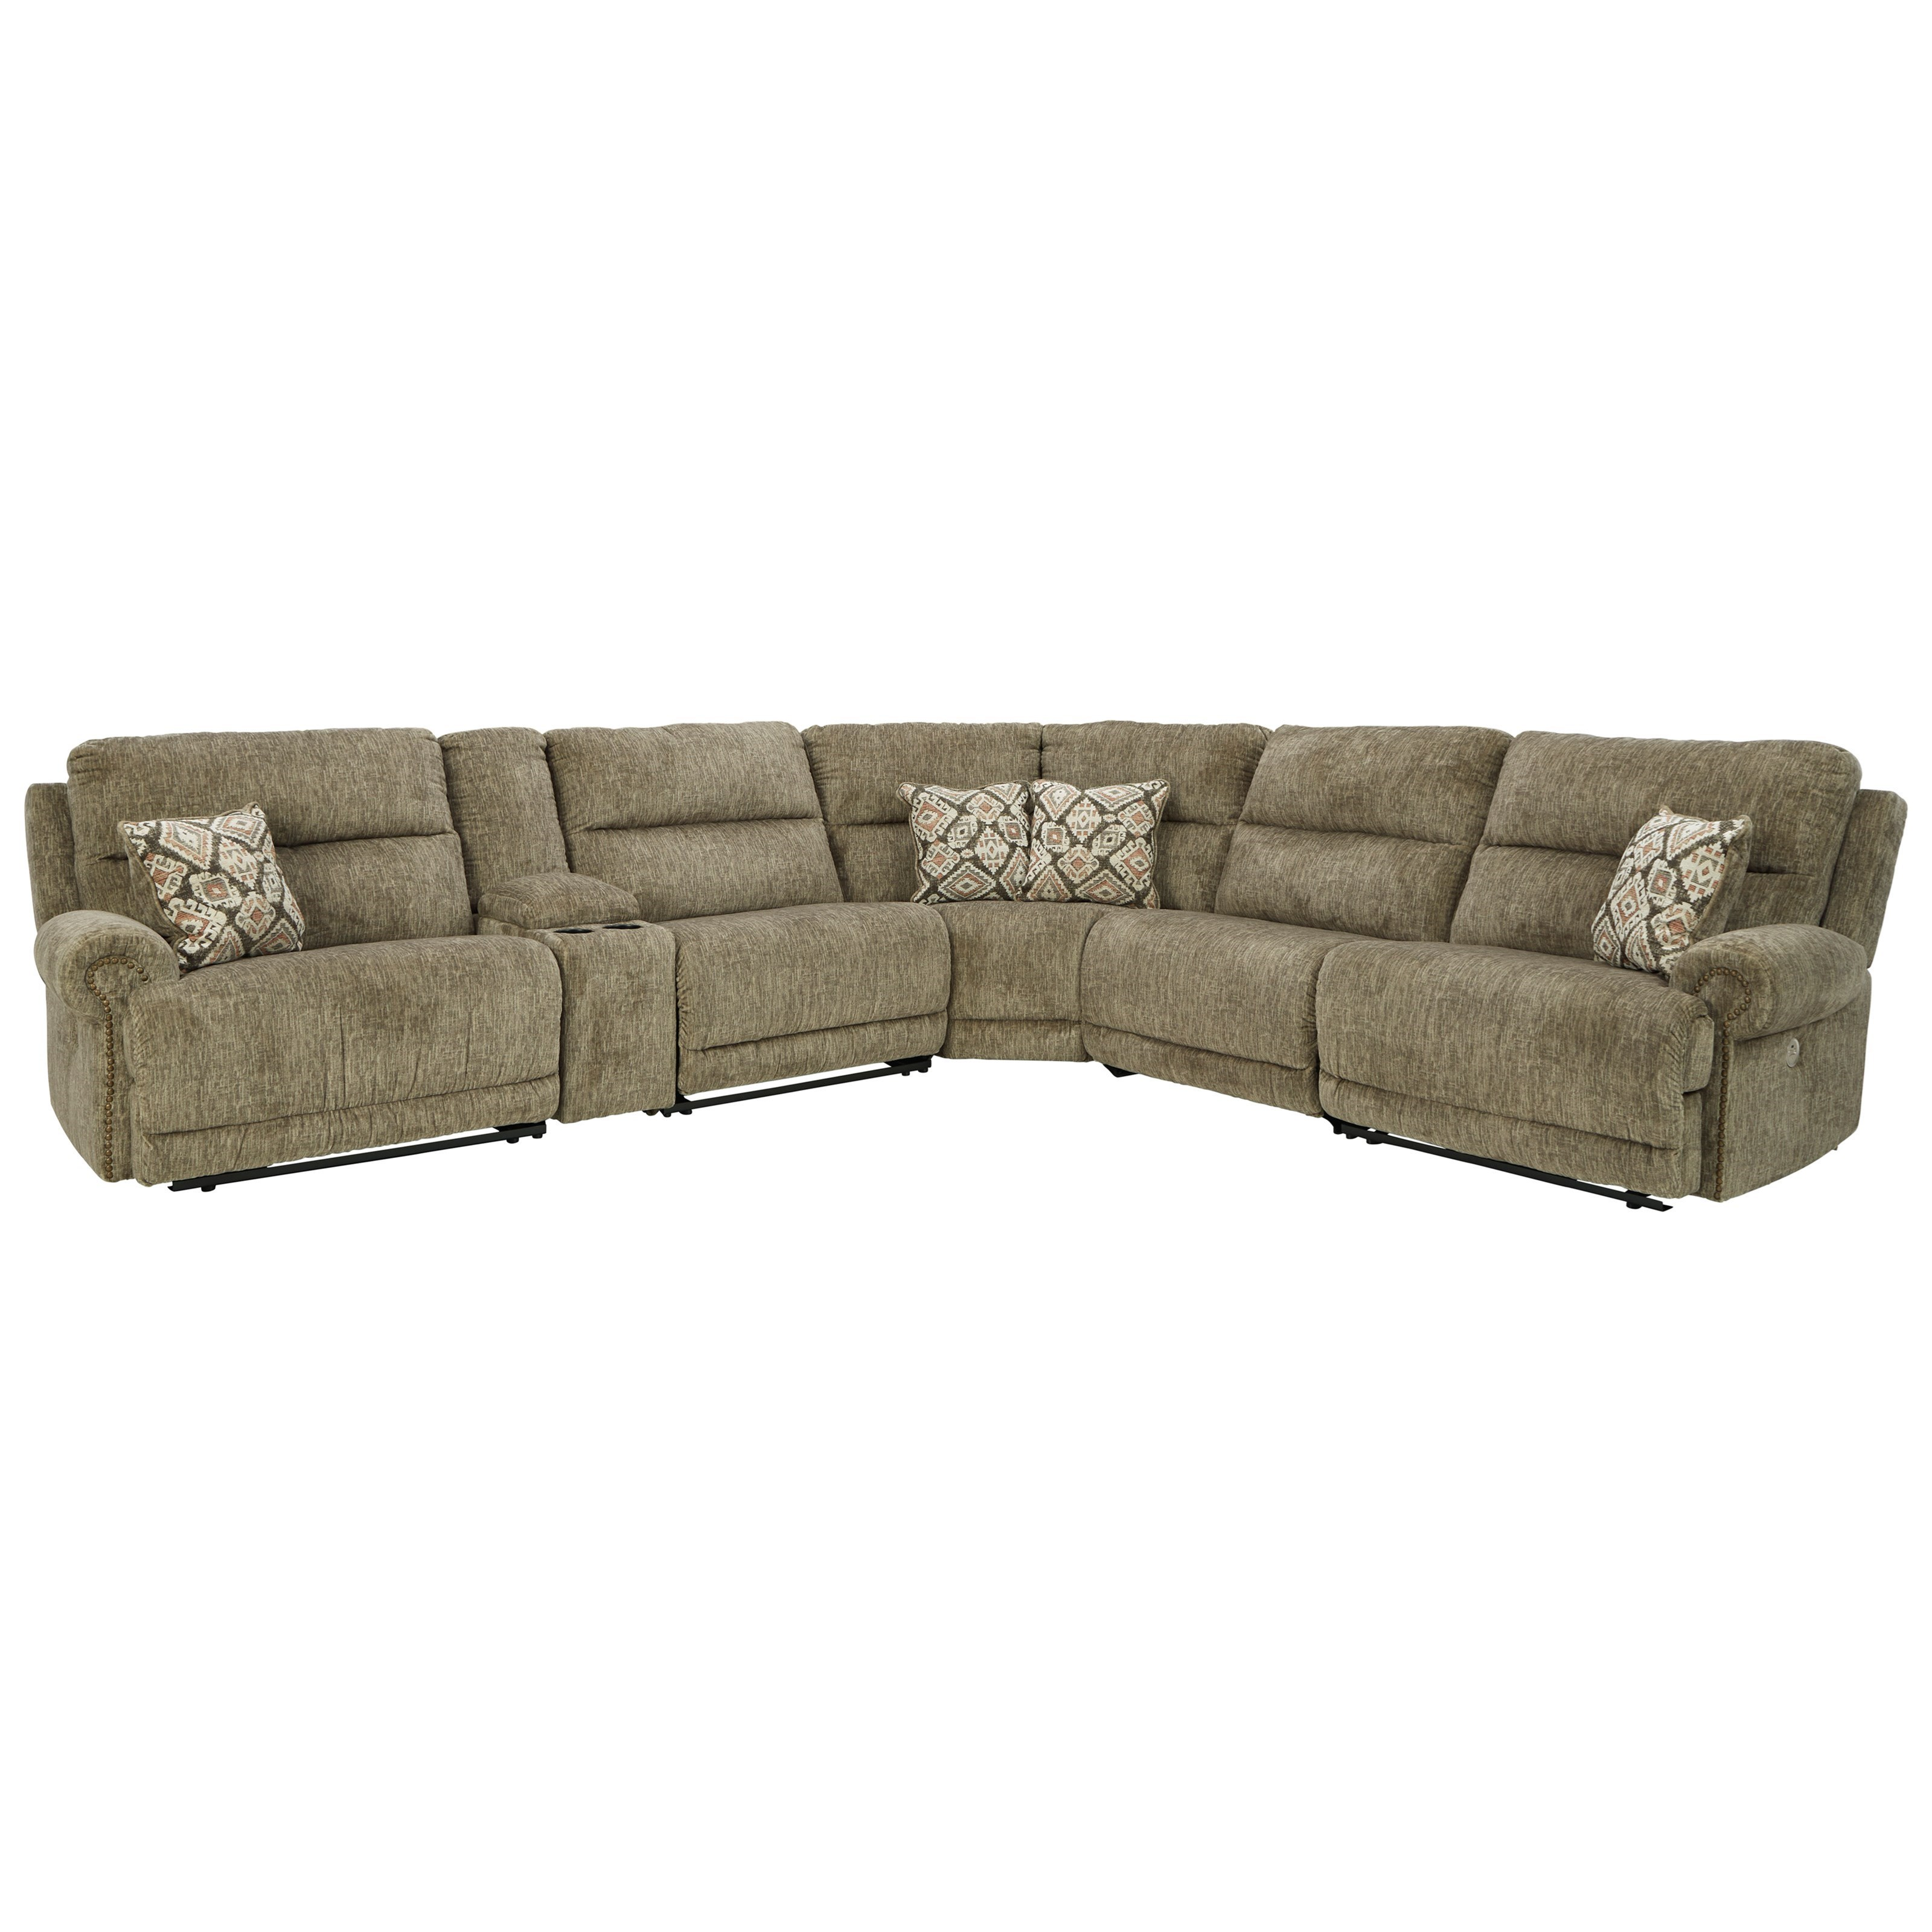 Lubec Power Reclining Sectional by Signature Design by Ashley at Northeast Factory Direct